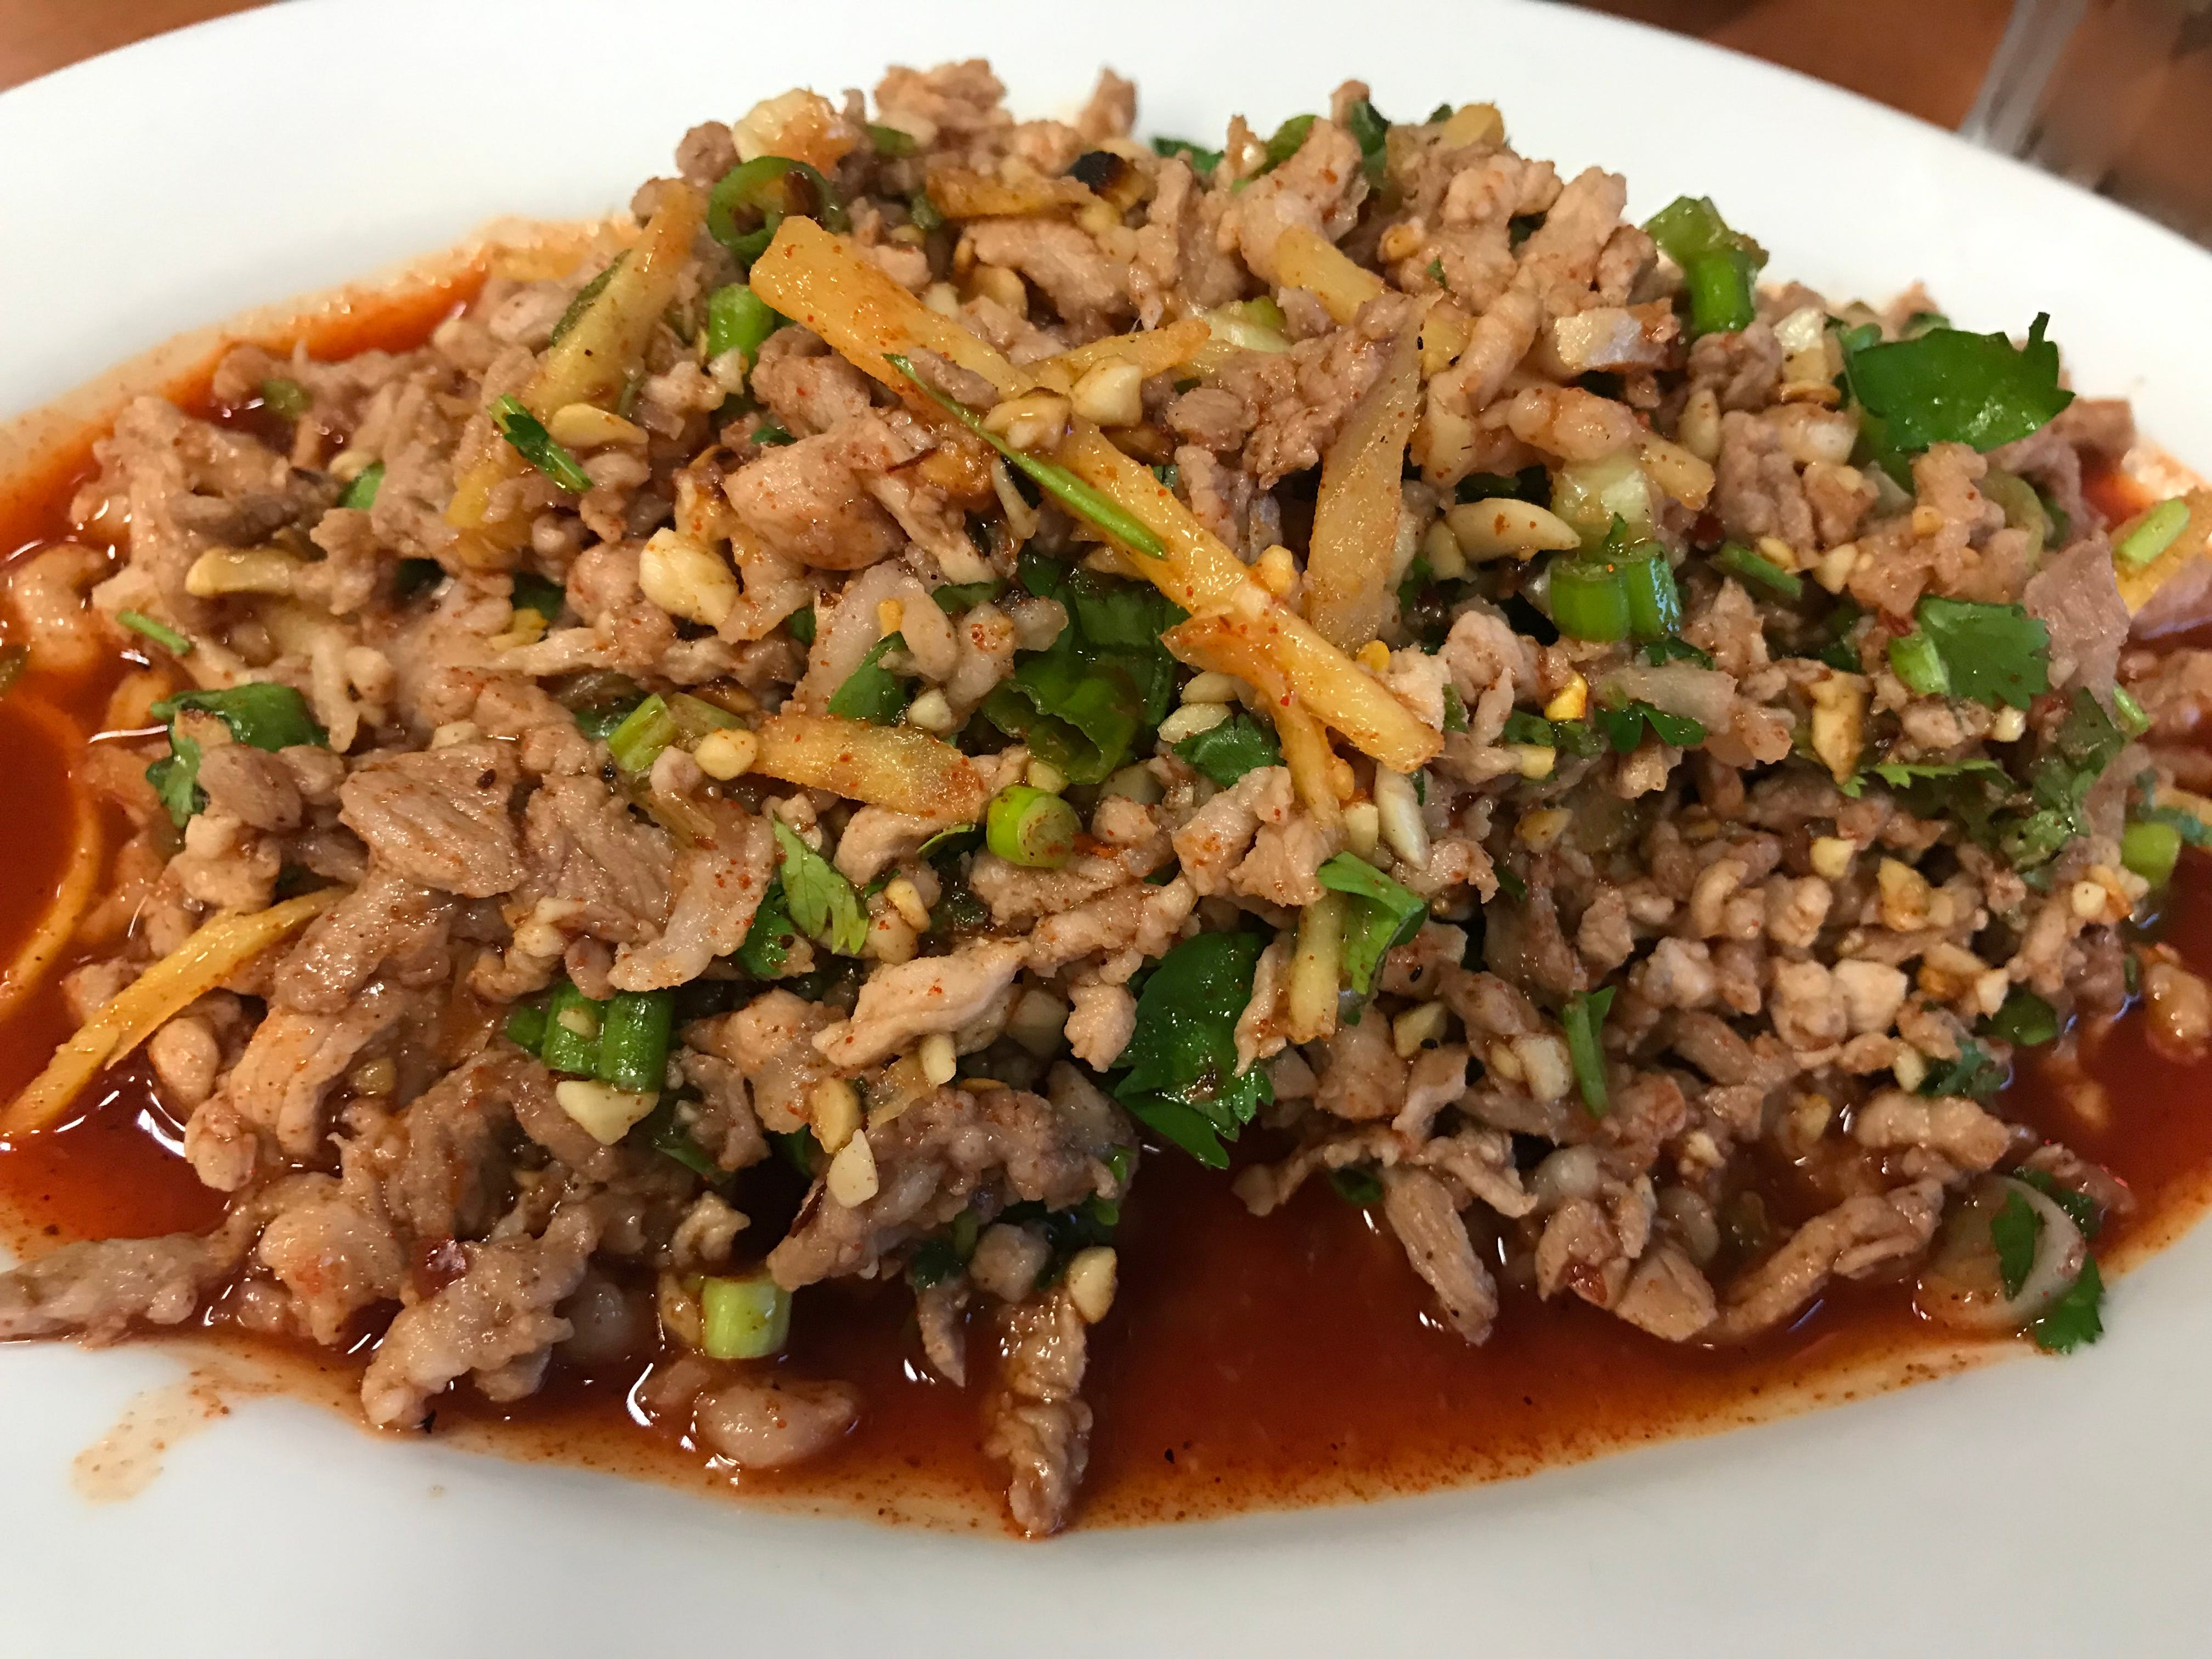 Nam sod, Thai pork salad, is flavored with ginger, green onions and cilantro, and gets crunch from peanuts. The dish, which can be ordered with chicken instead, is an appetizer at Kim's Thai, 938 W. Layton Ave.